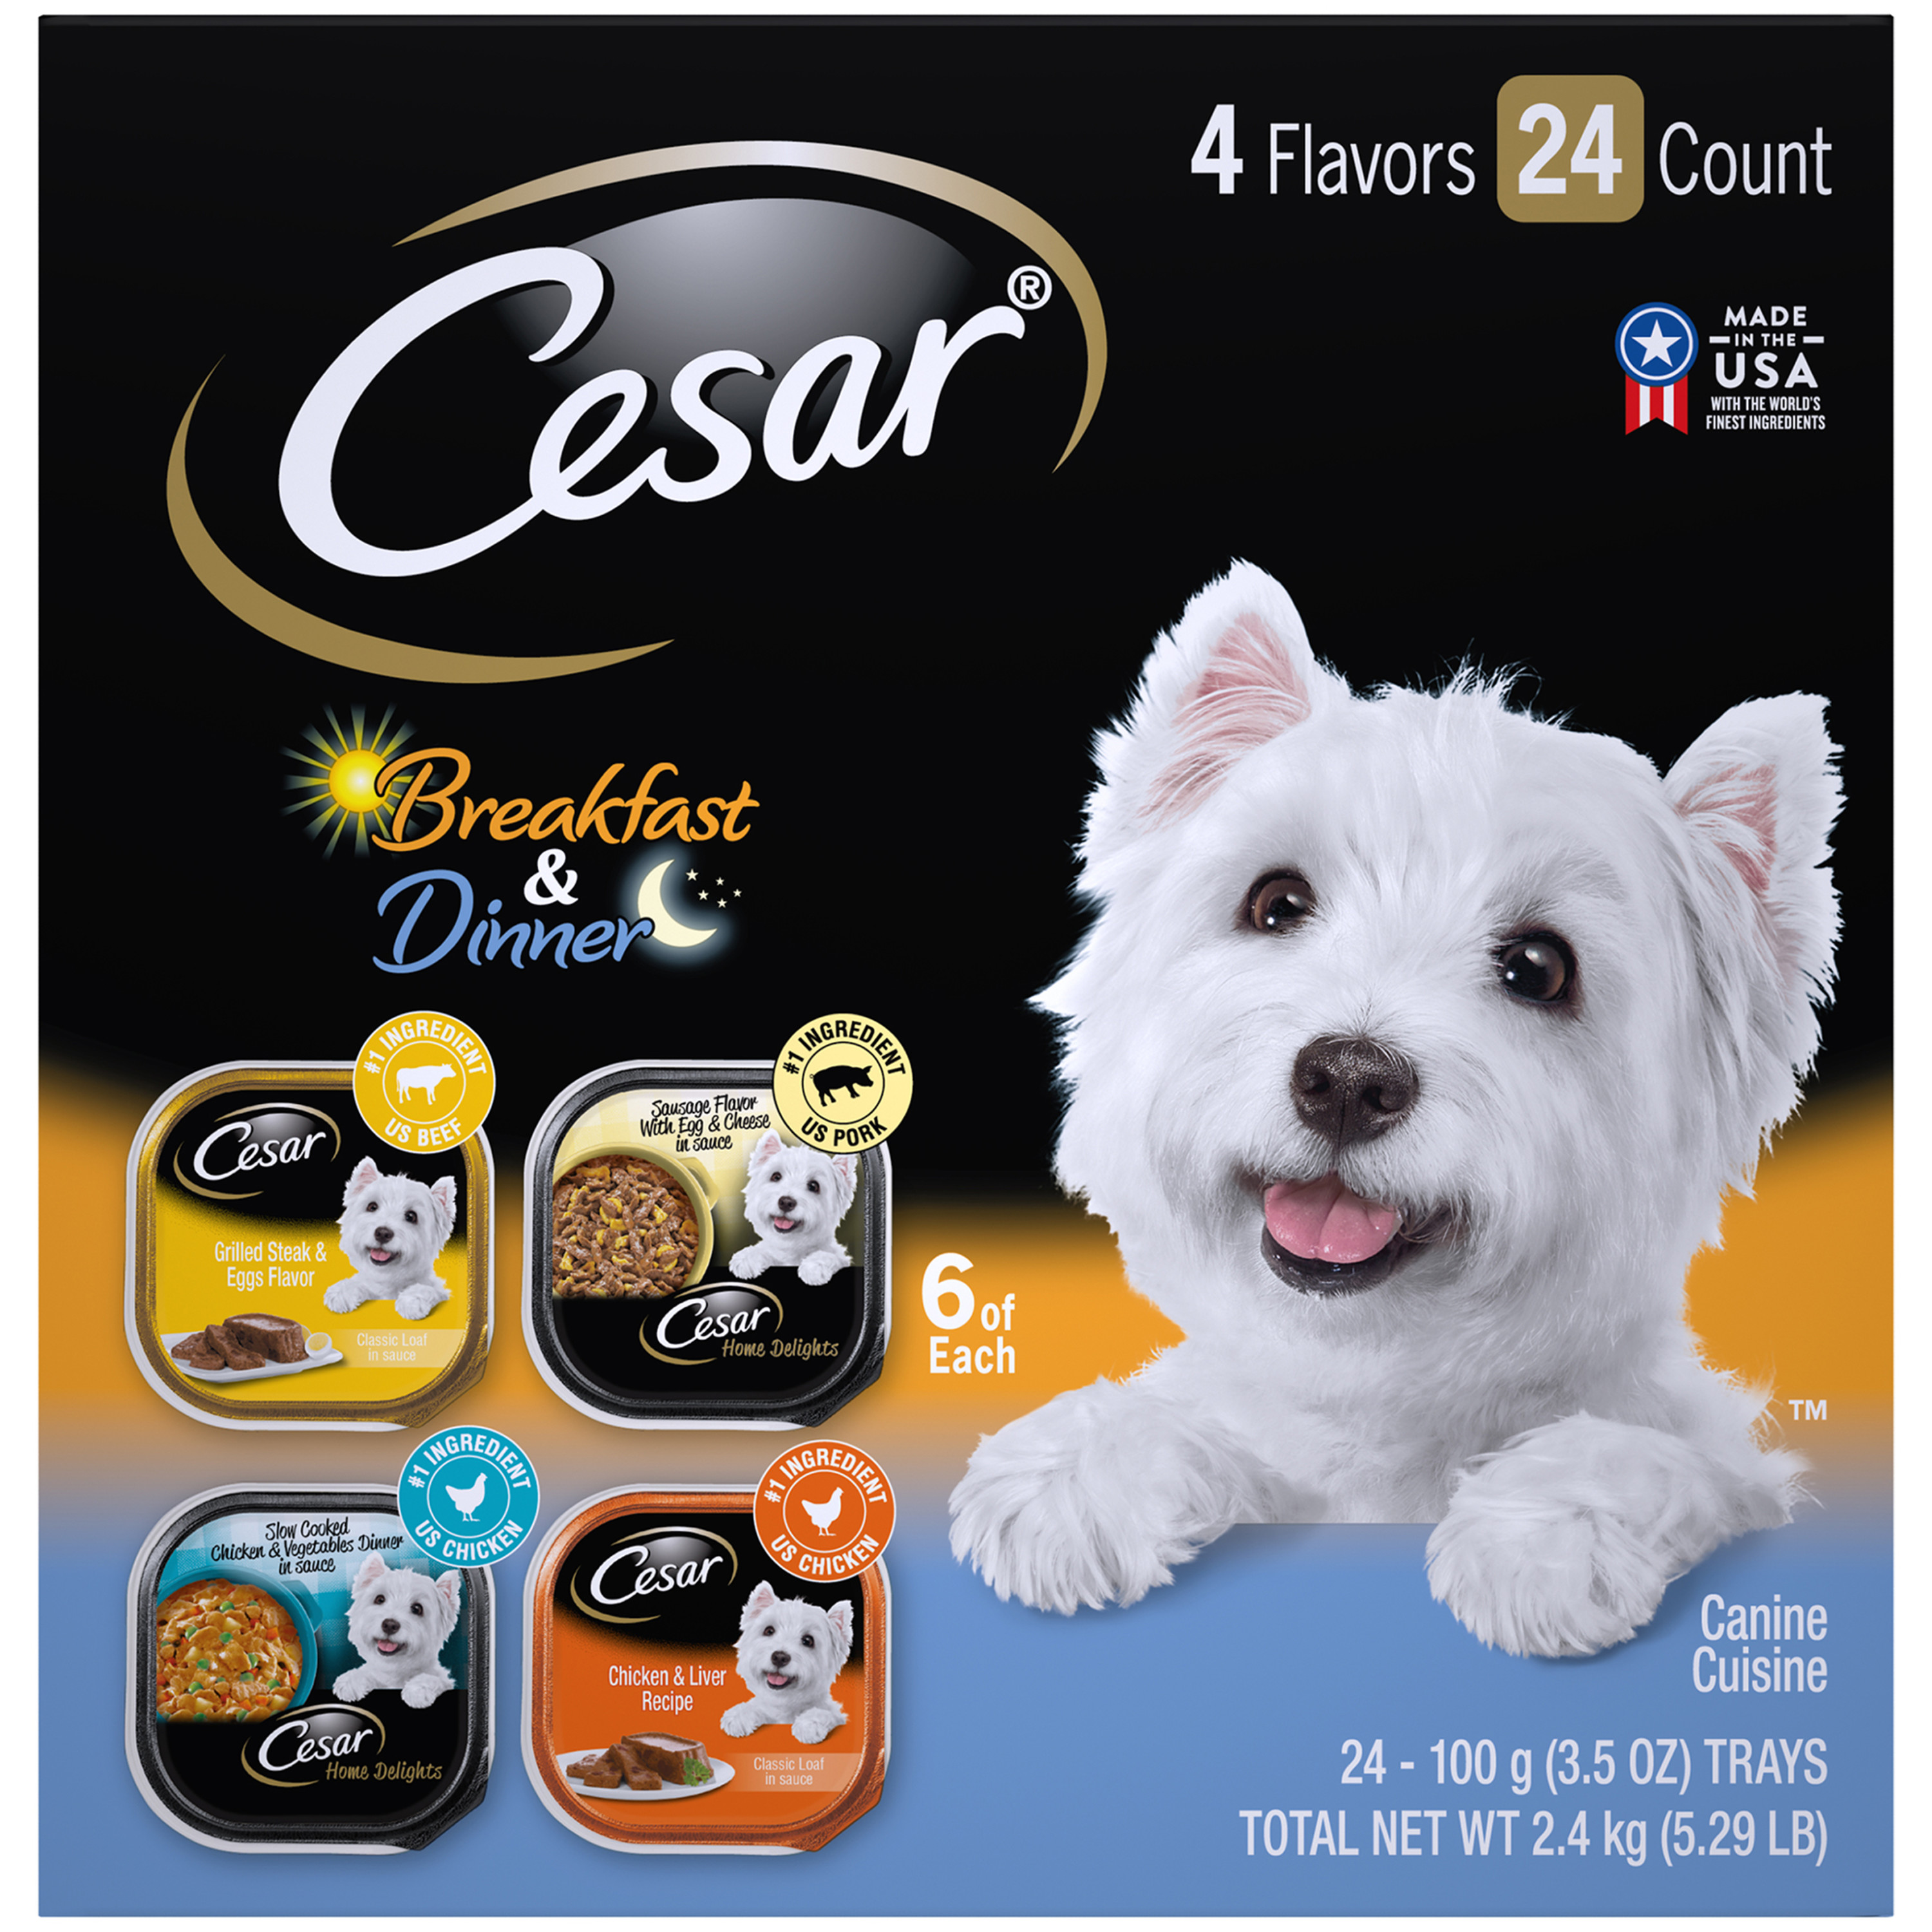 Cesar Wet Dog Food Home Delights & Classic Loaf in Sauce Breakfast & Dinner Variety Pack, (24) 3.5 oz. Trays